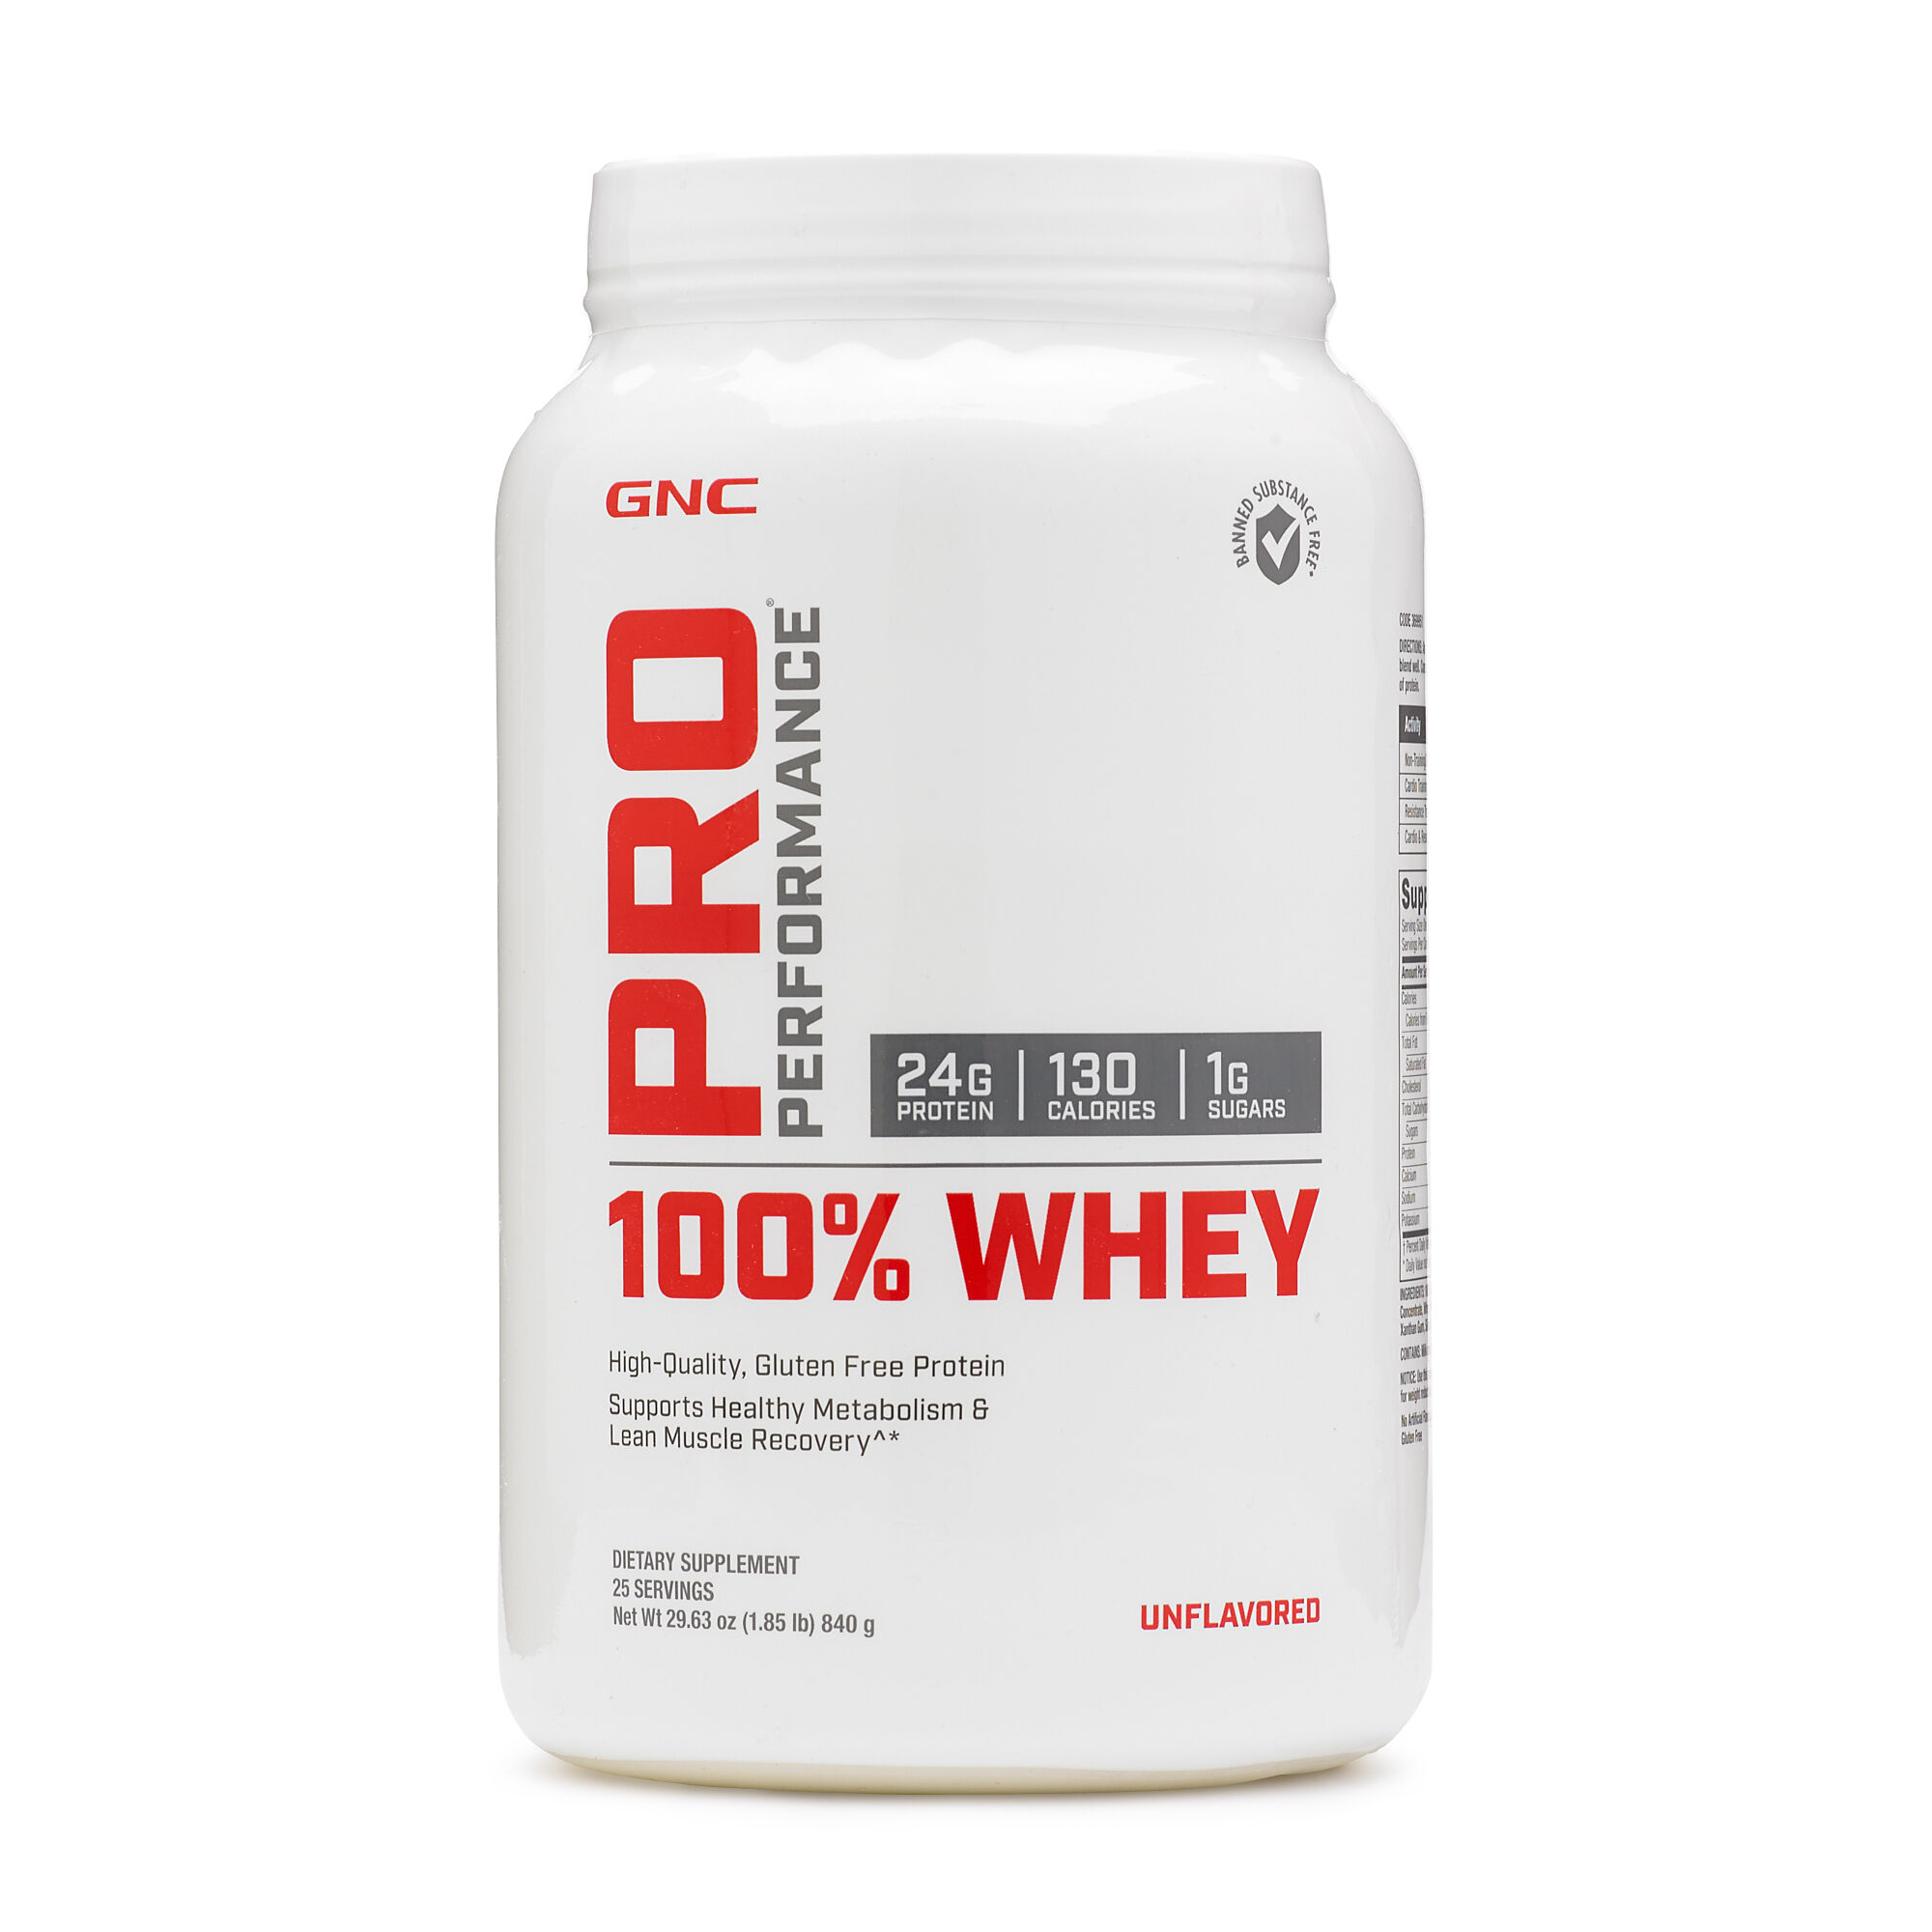 Save 50% on GNC Pro Performance 100% Whey